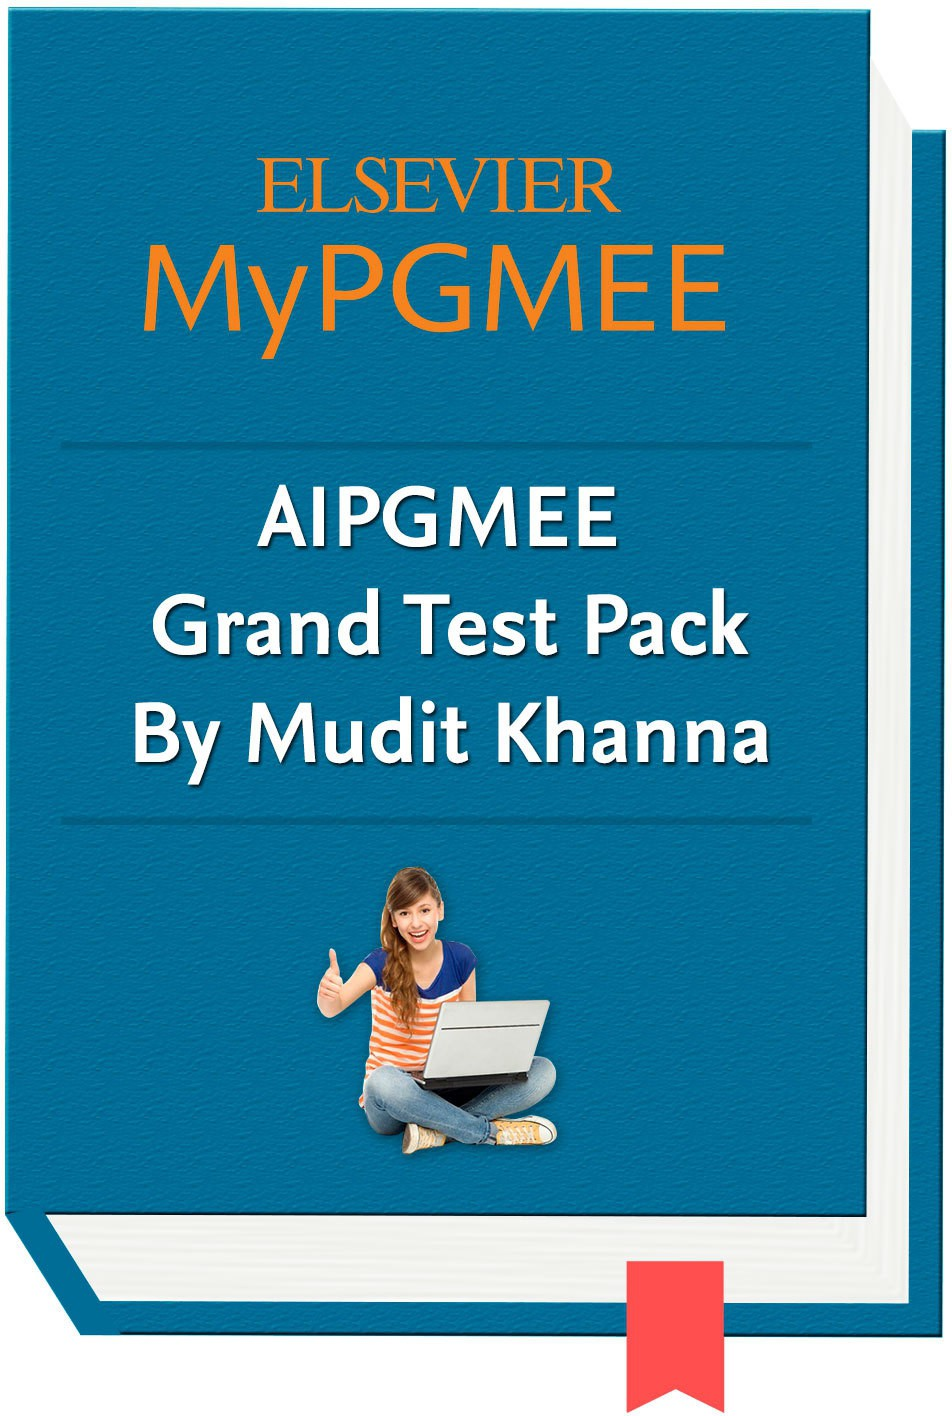 Elsevier MyPGMEE - AIPGMEE Grand Test Pack by Mudit Khanna Online Course(Voucher)